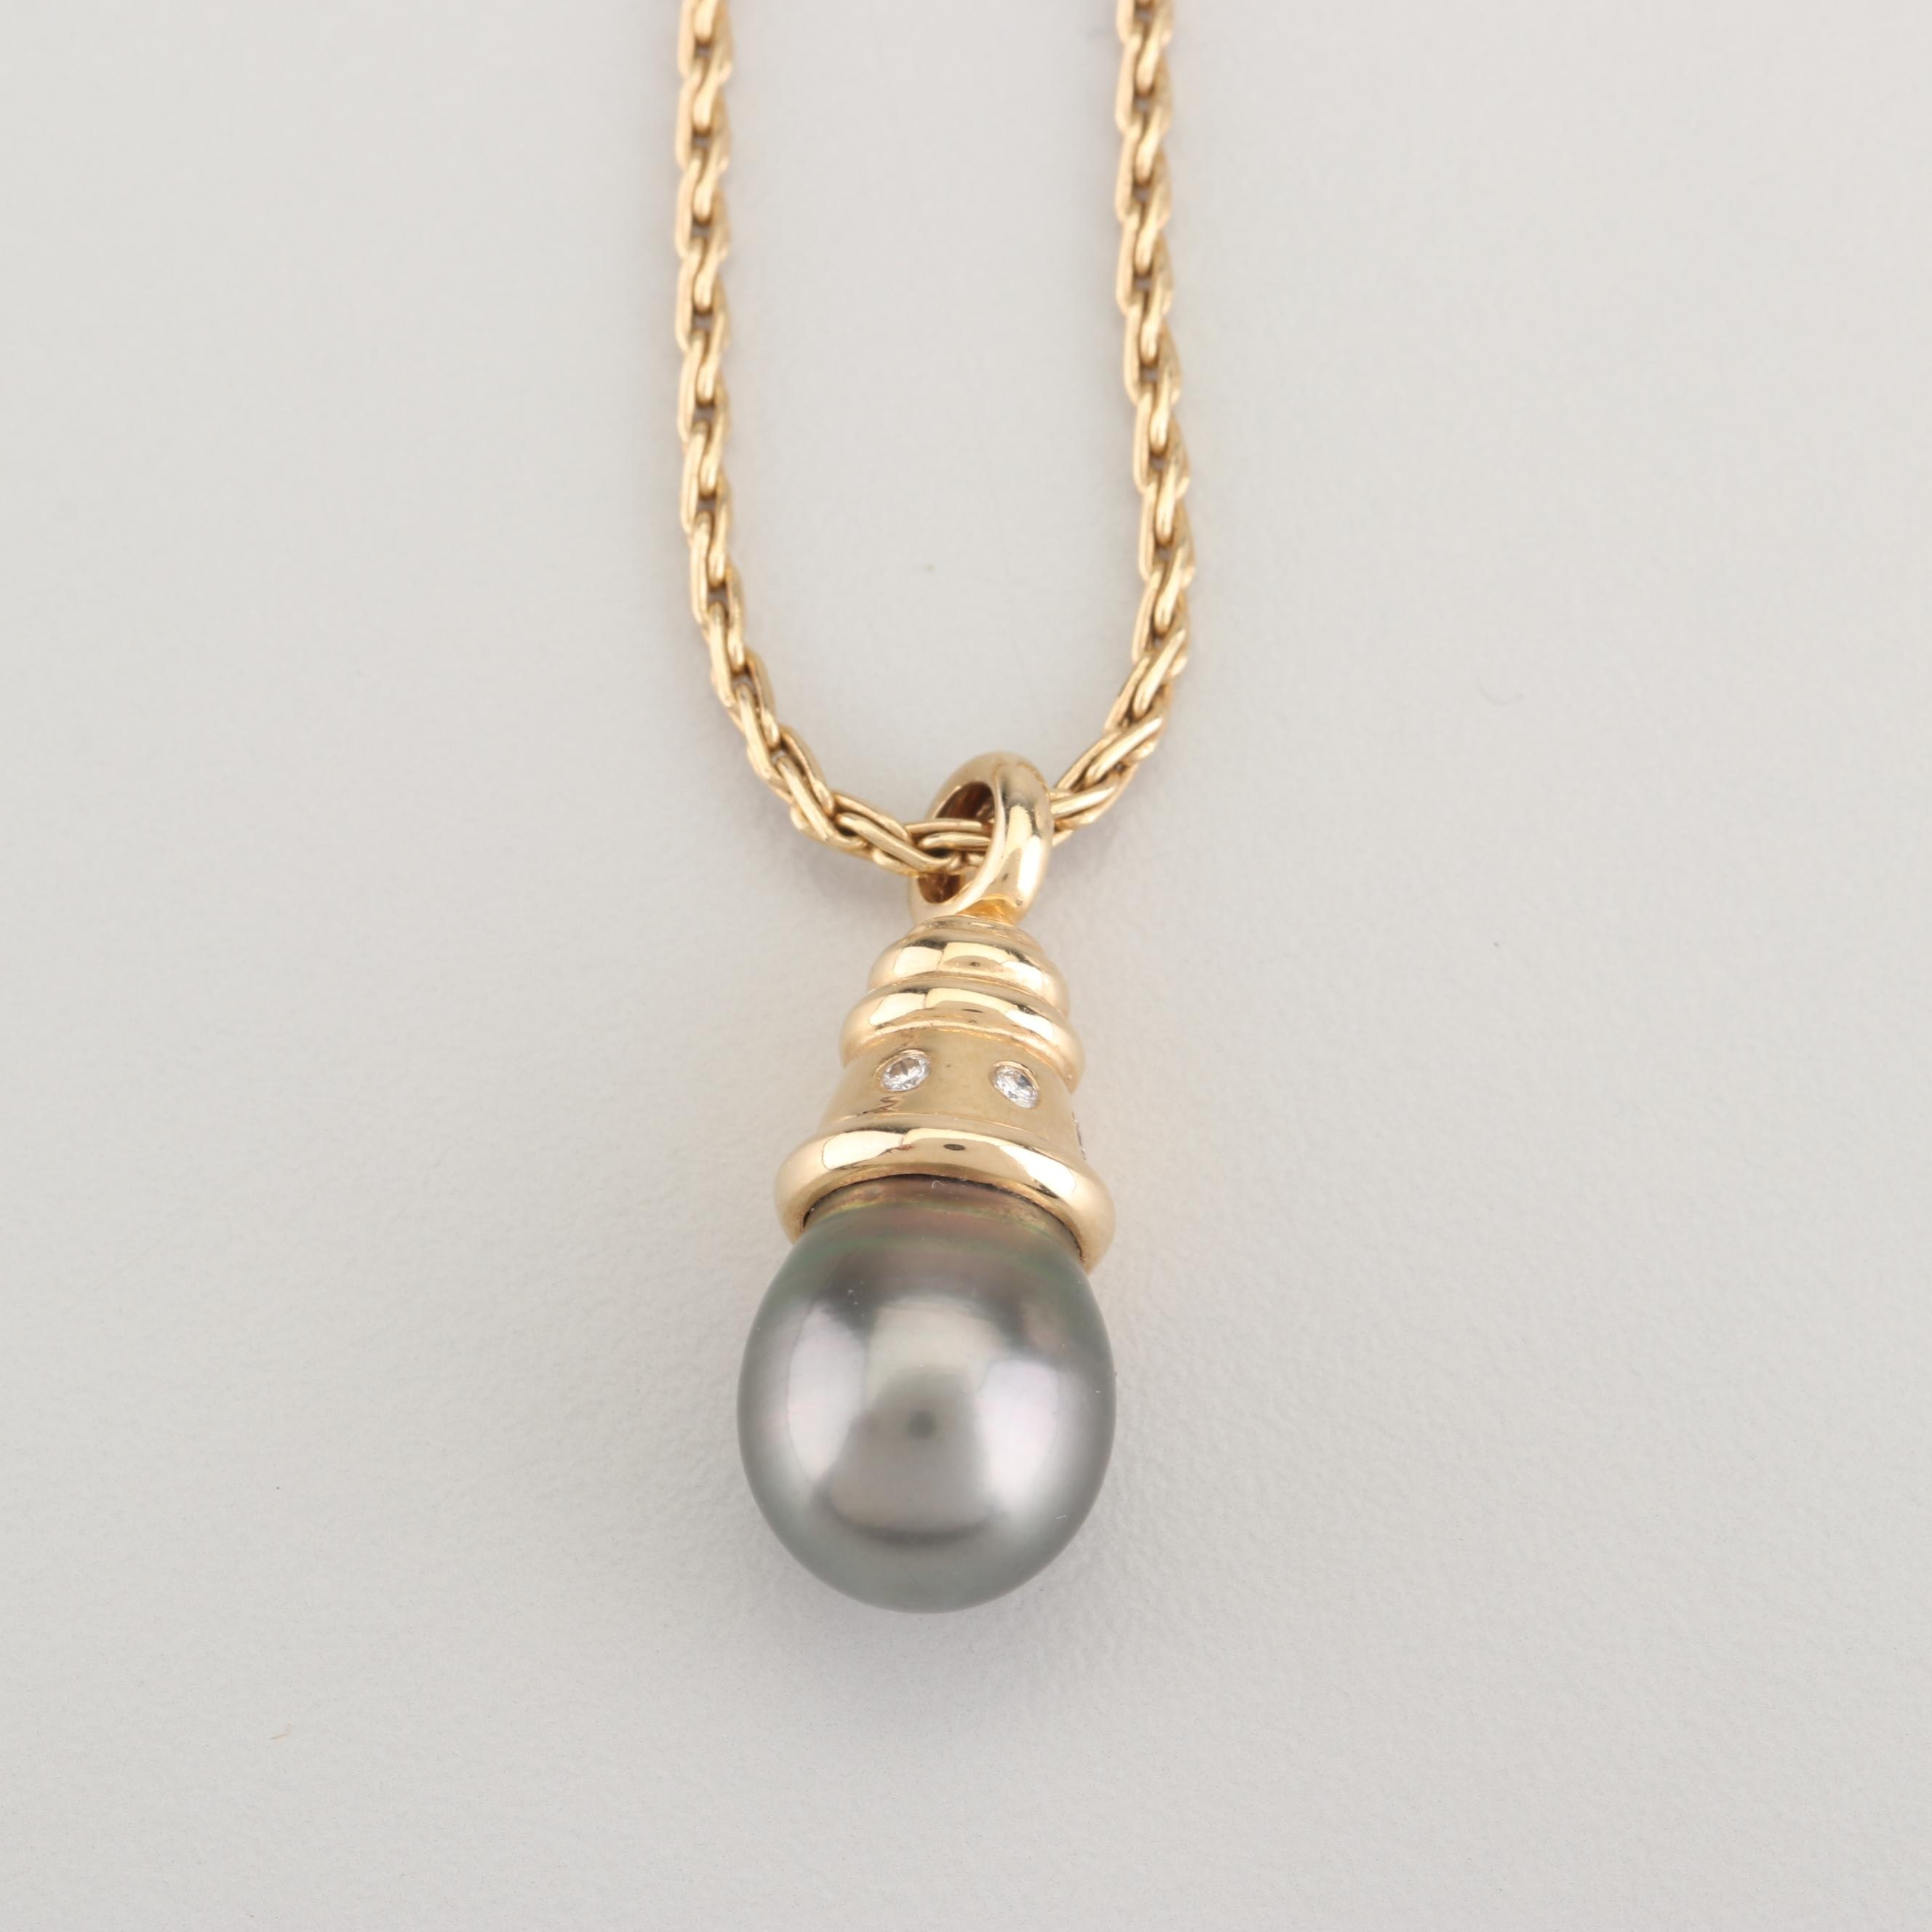 14K Yellow Gold Cultured Black Pearl and Diamond Pendant Necklace